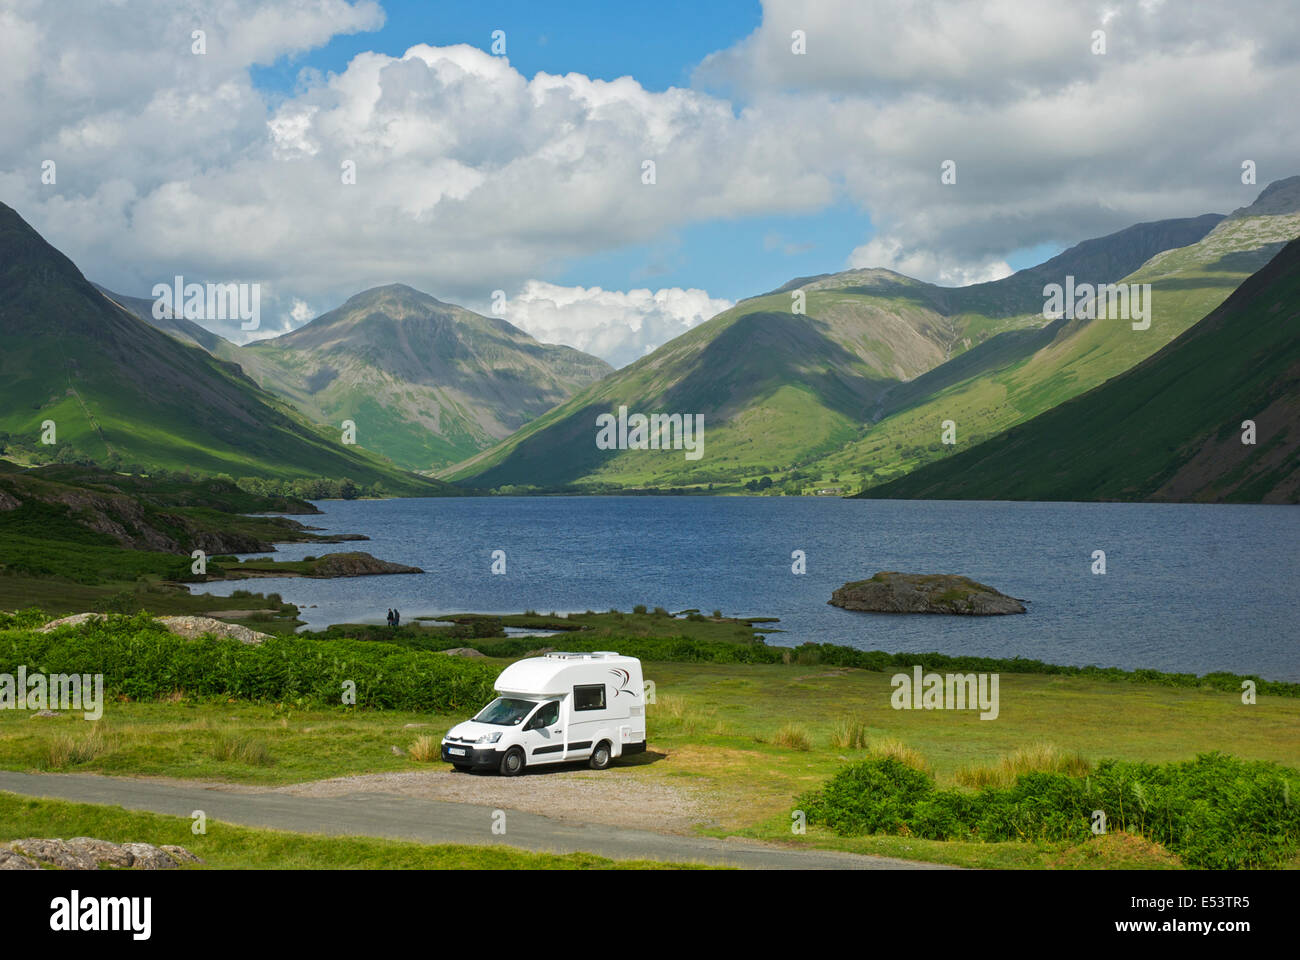 romahome-r25-parked-next-to-wastwater-lake-district-national-park-E53TR5.jpg